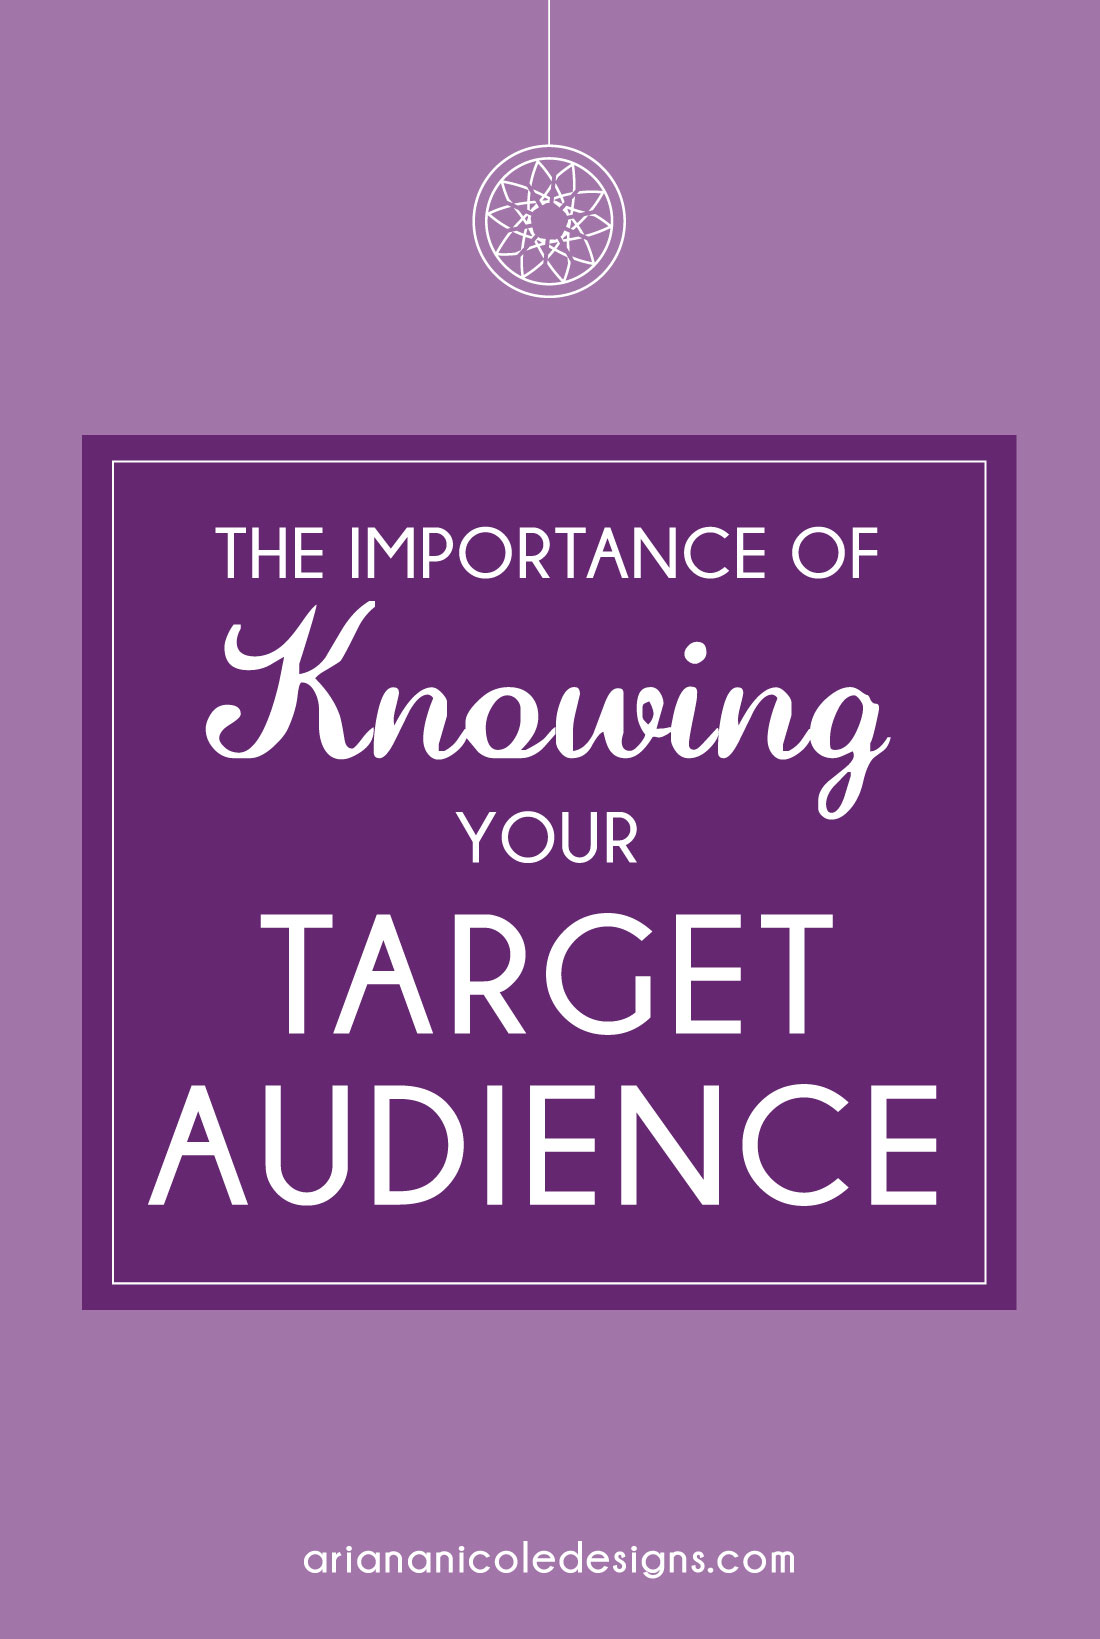 The_Importance_Of_Knowing_Your_Target_Audience-1100